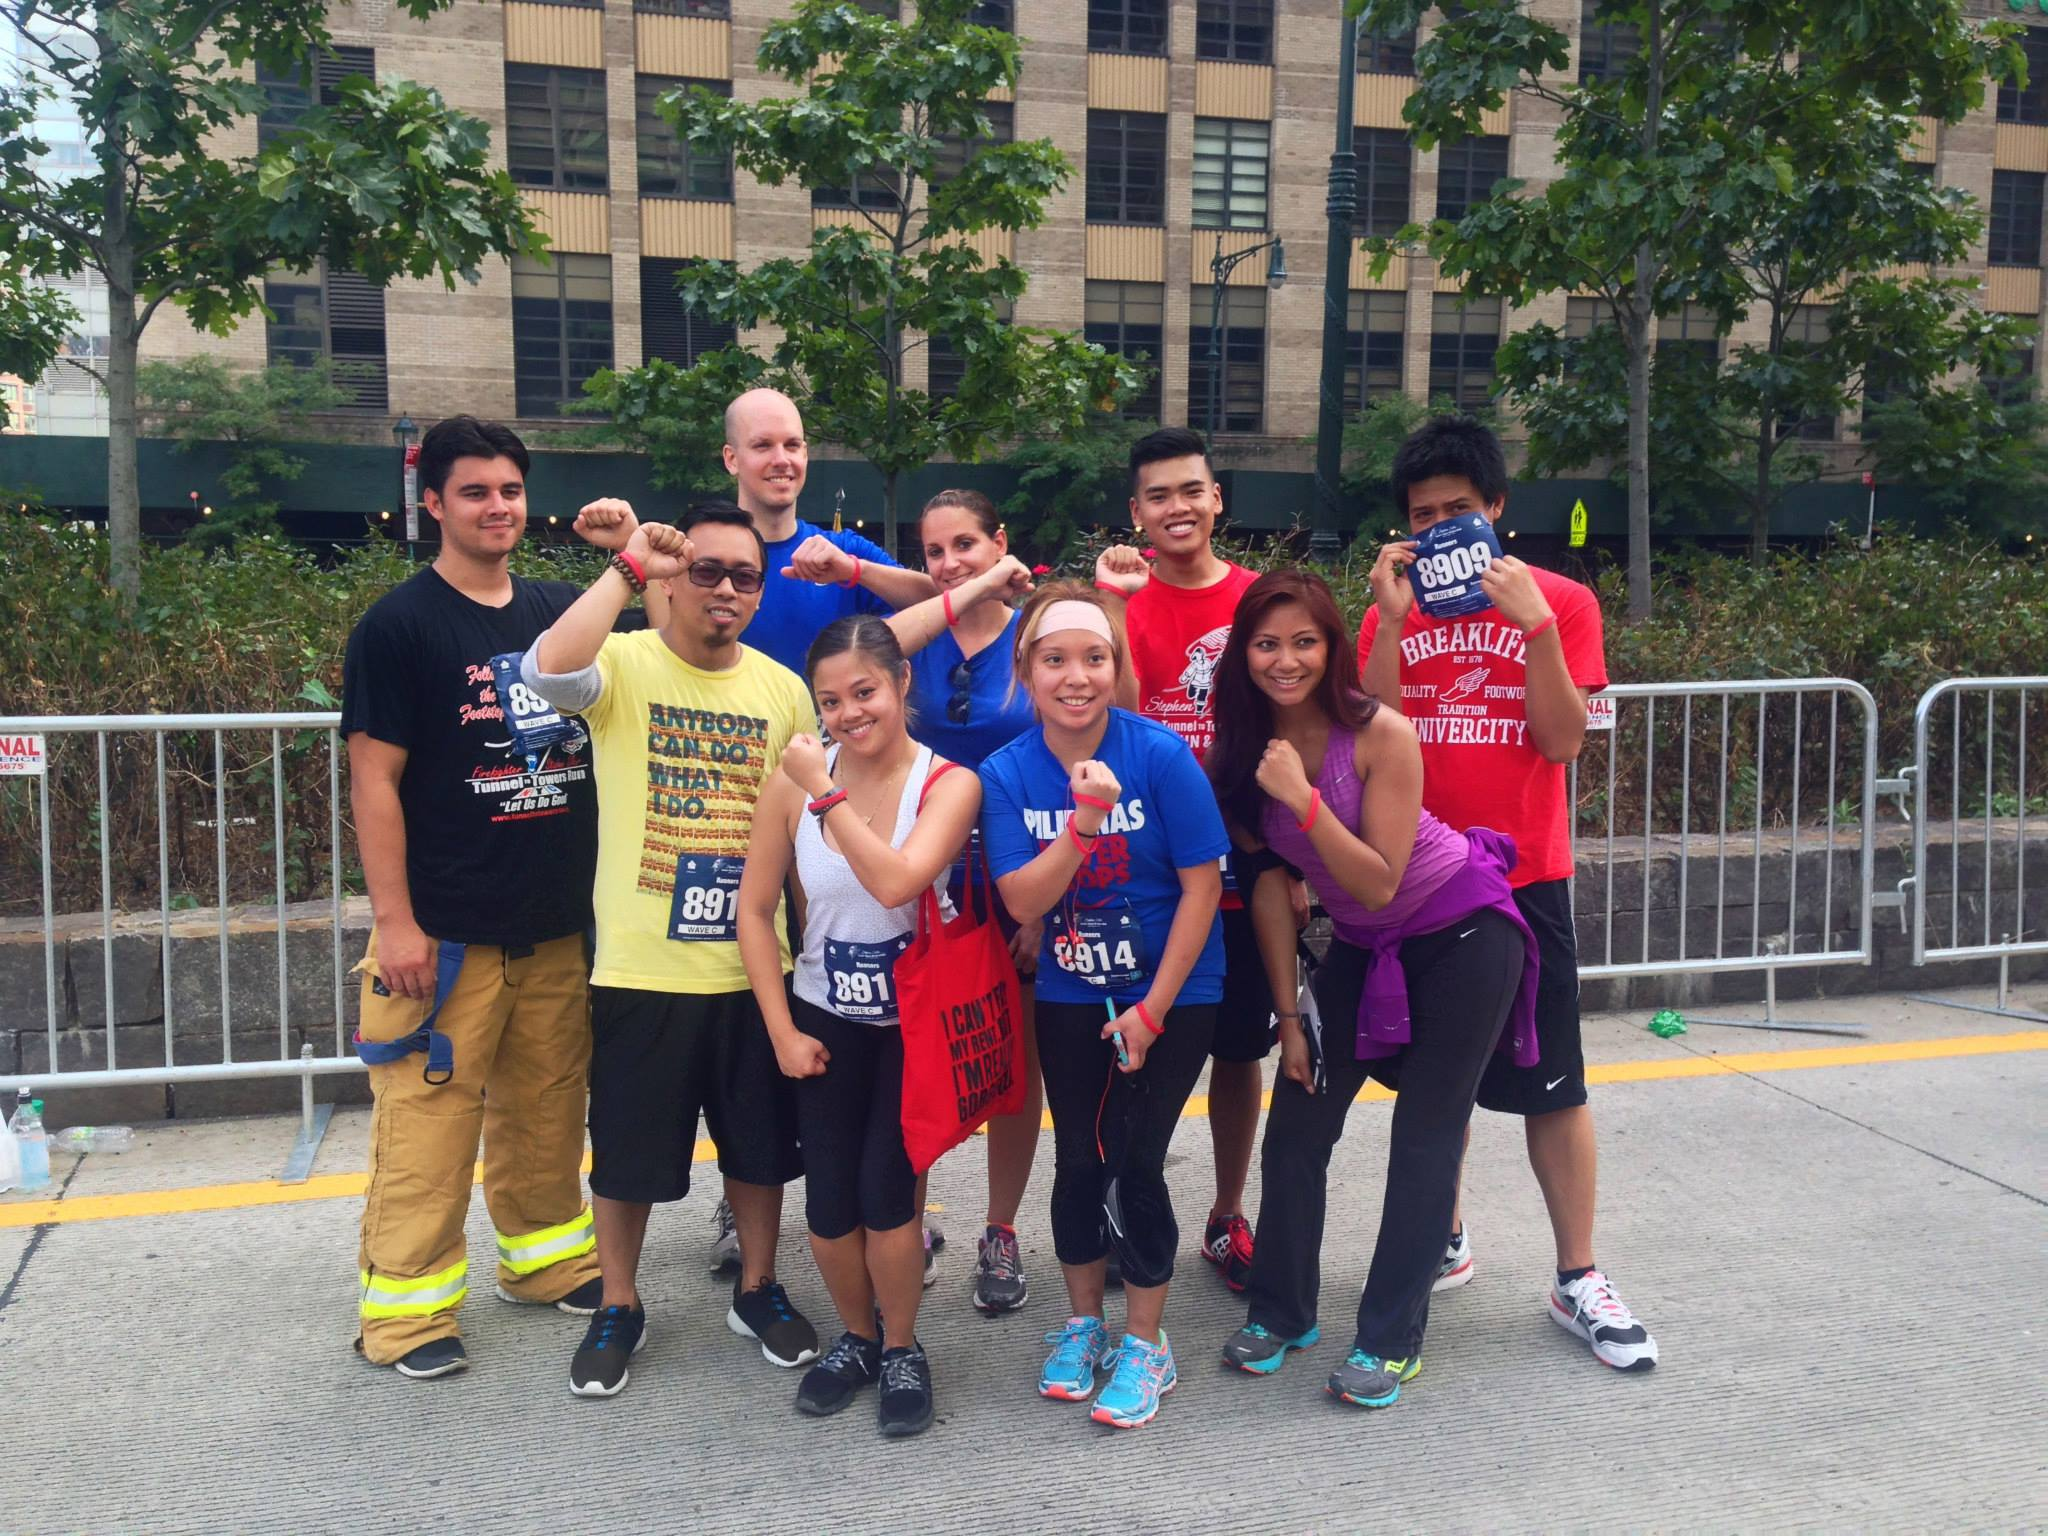 Team TORCHE Bearers @ Tunnel to Towers 5K 2014